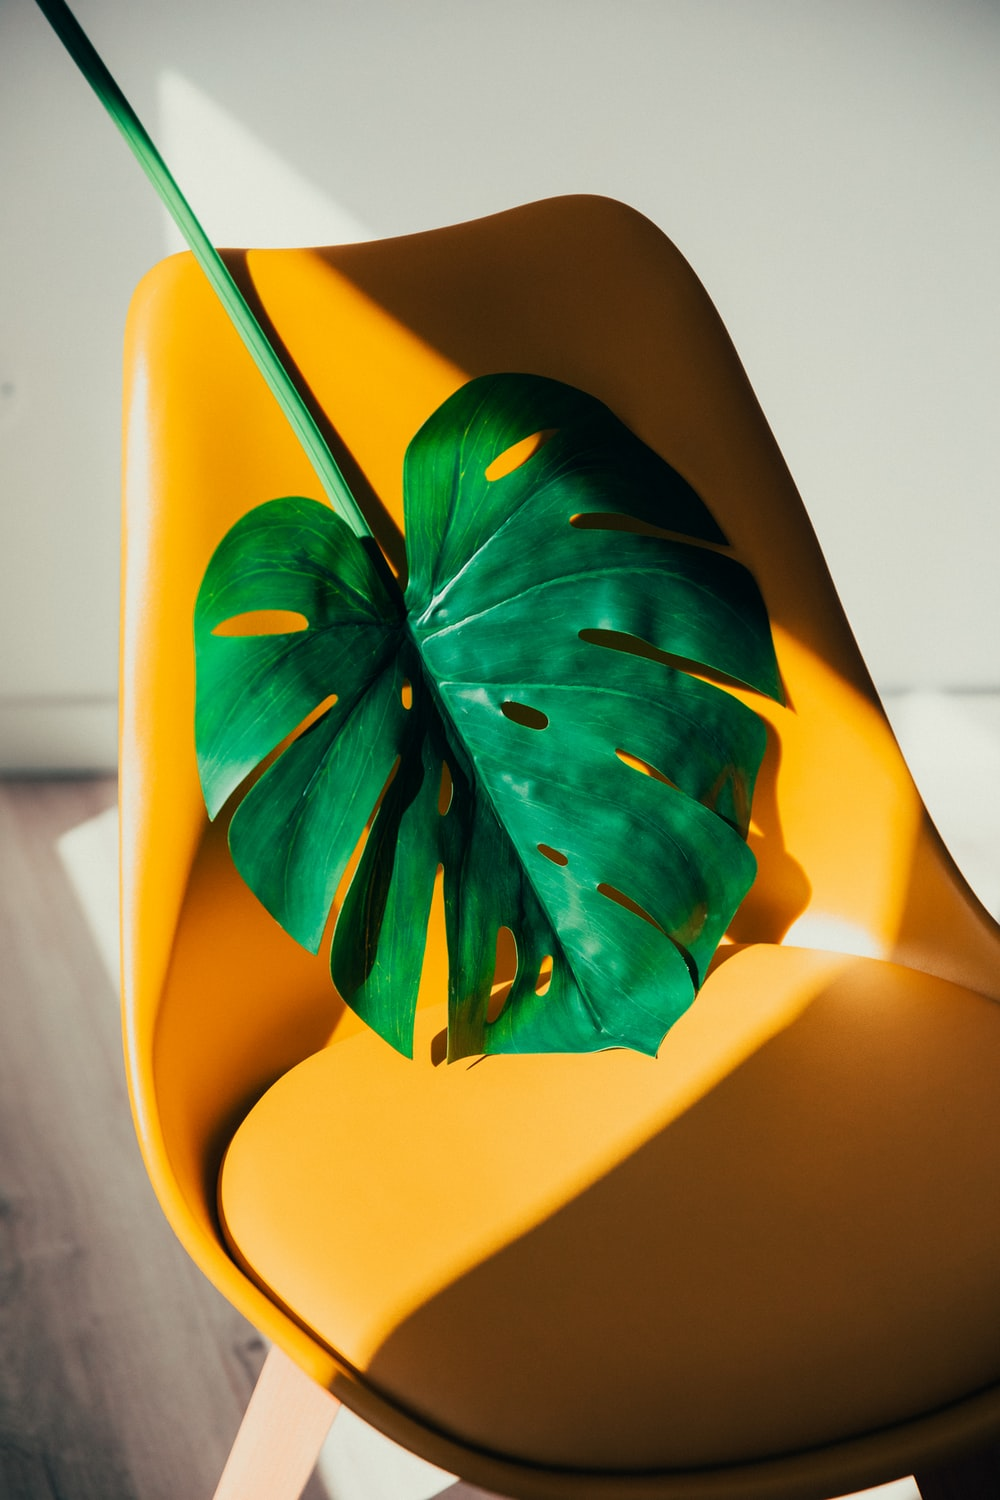 green leaf on yellow plastic chair